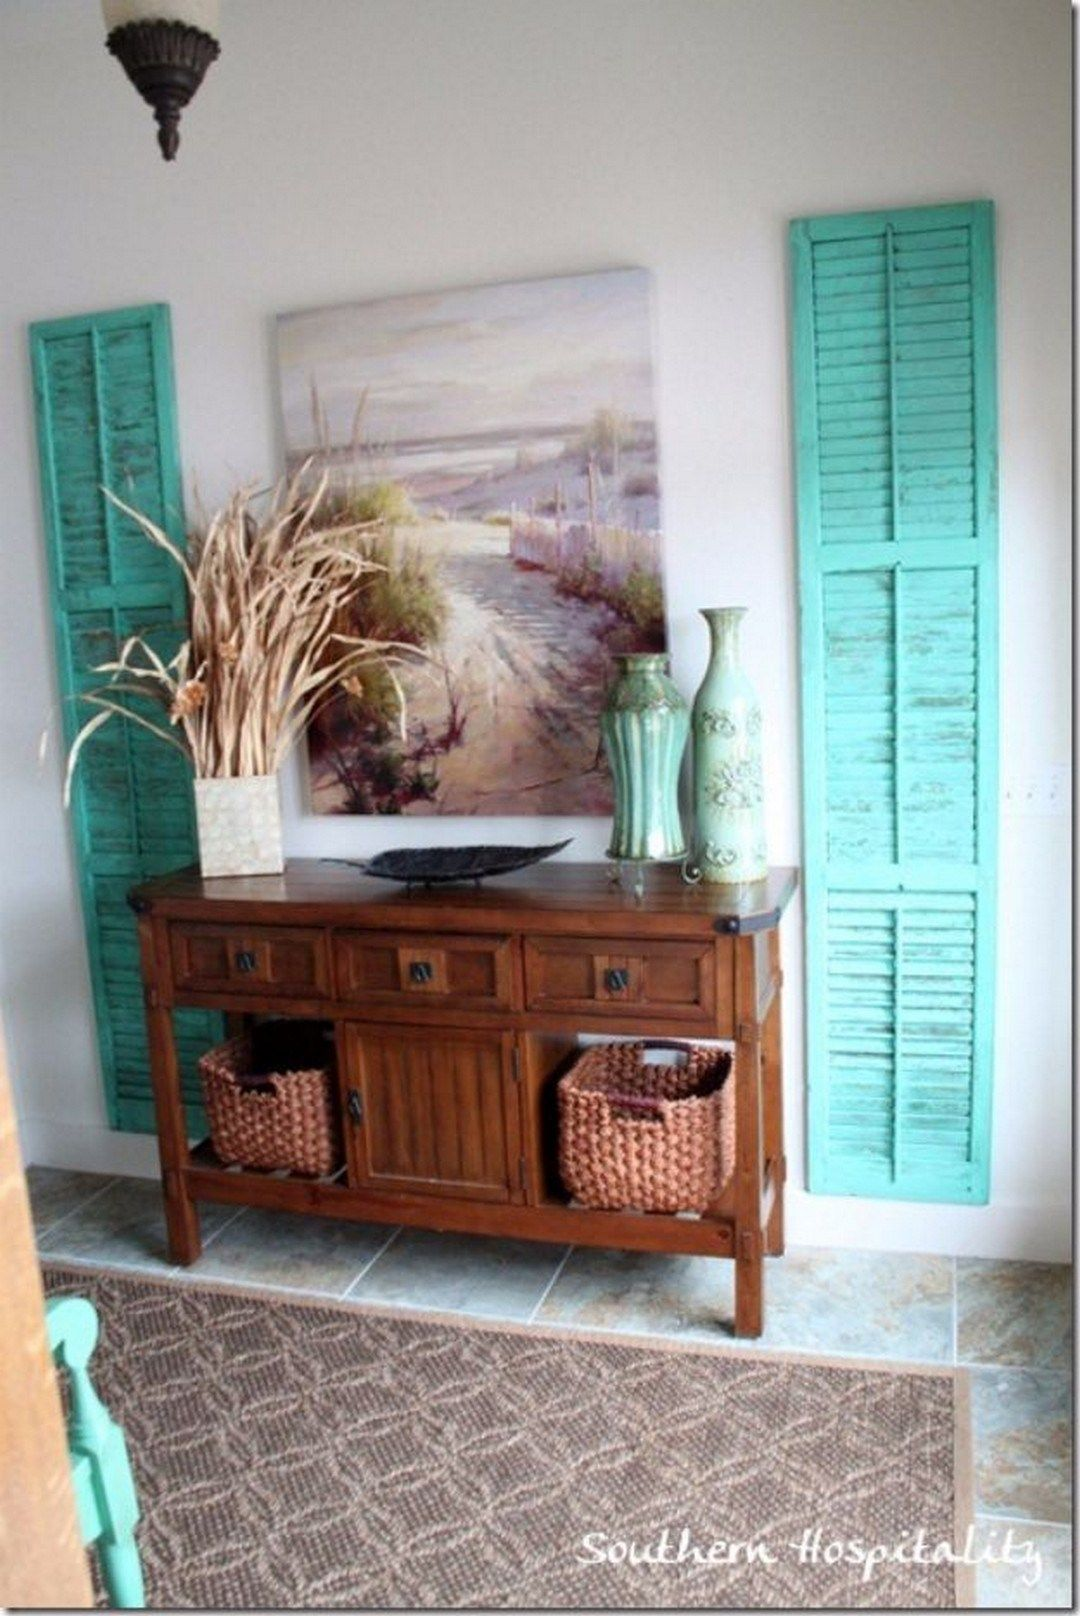 diy home decor ideas on a budget you must try lake house